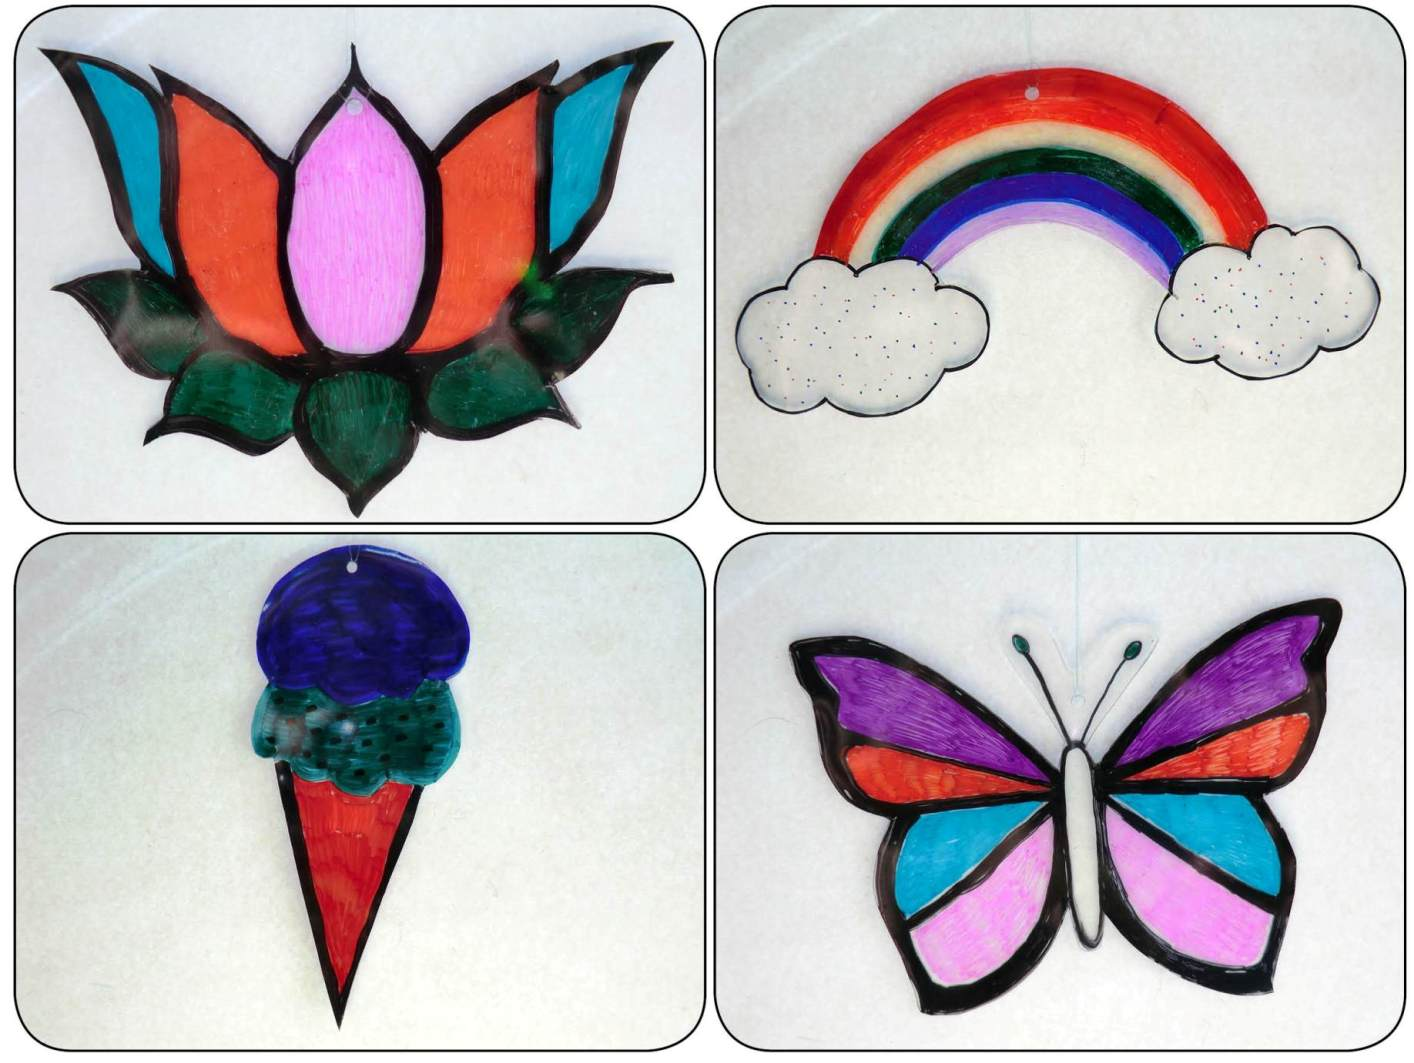 Shrinky Dink to your heart's delight Saturdays in July